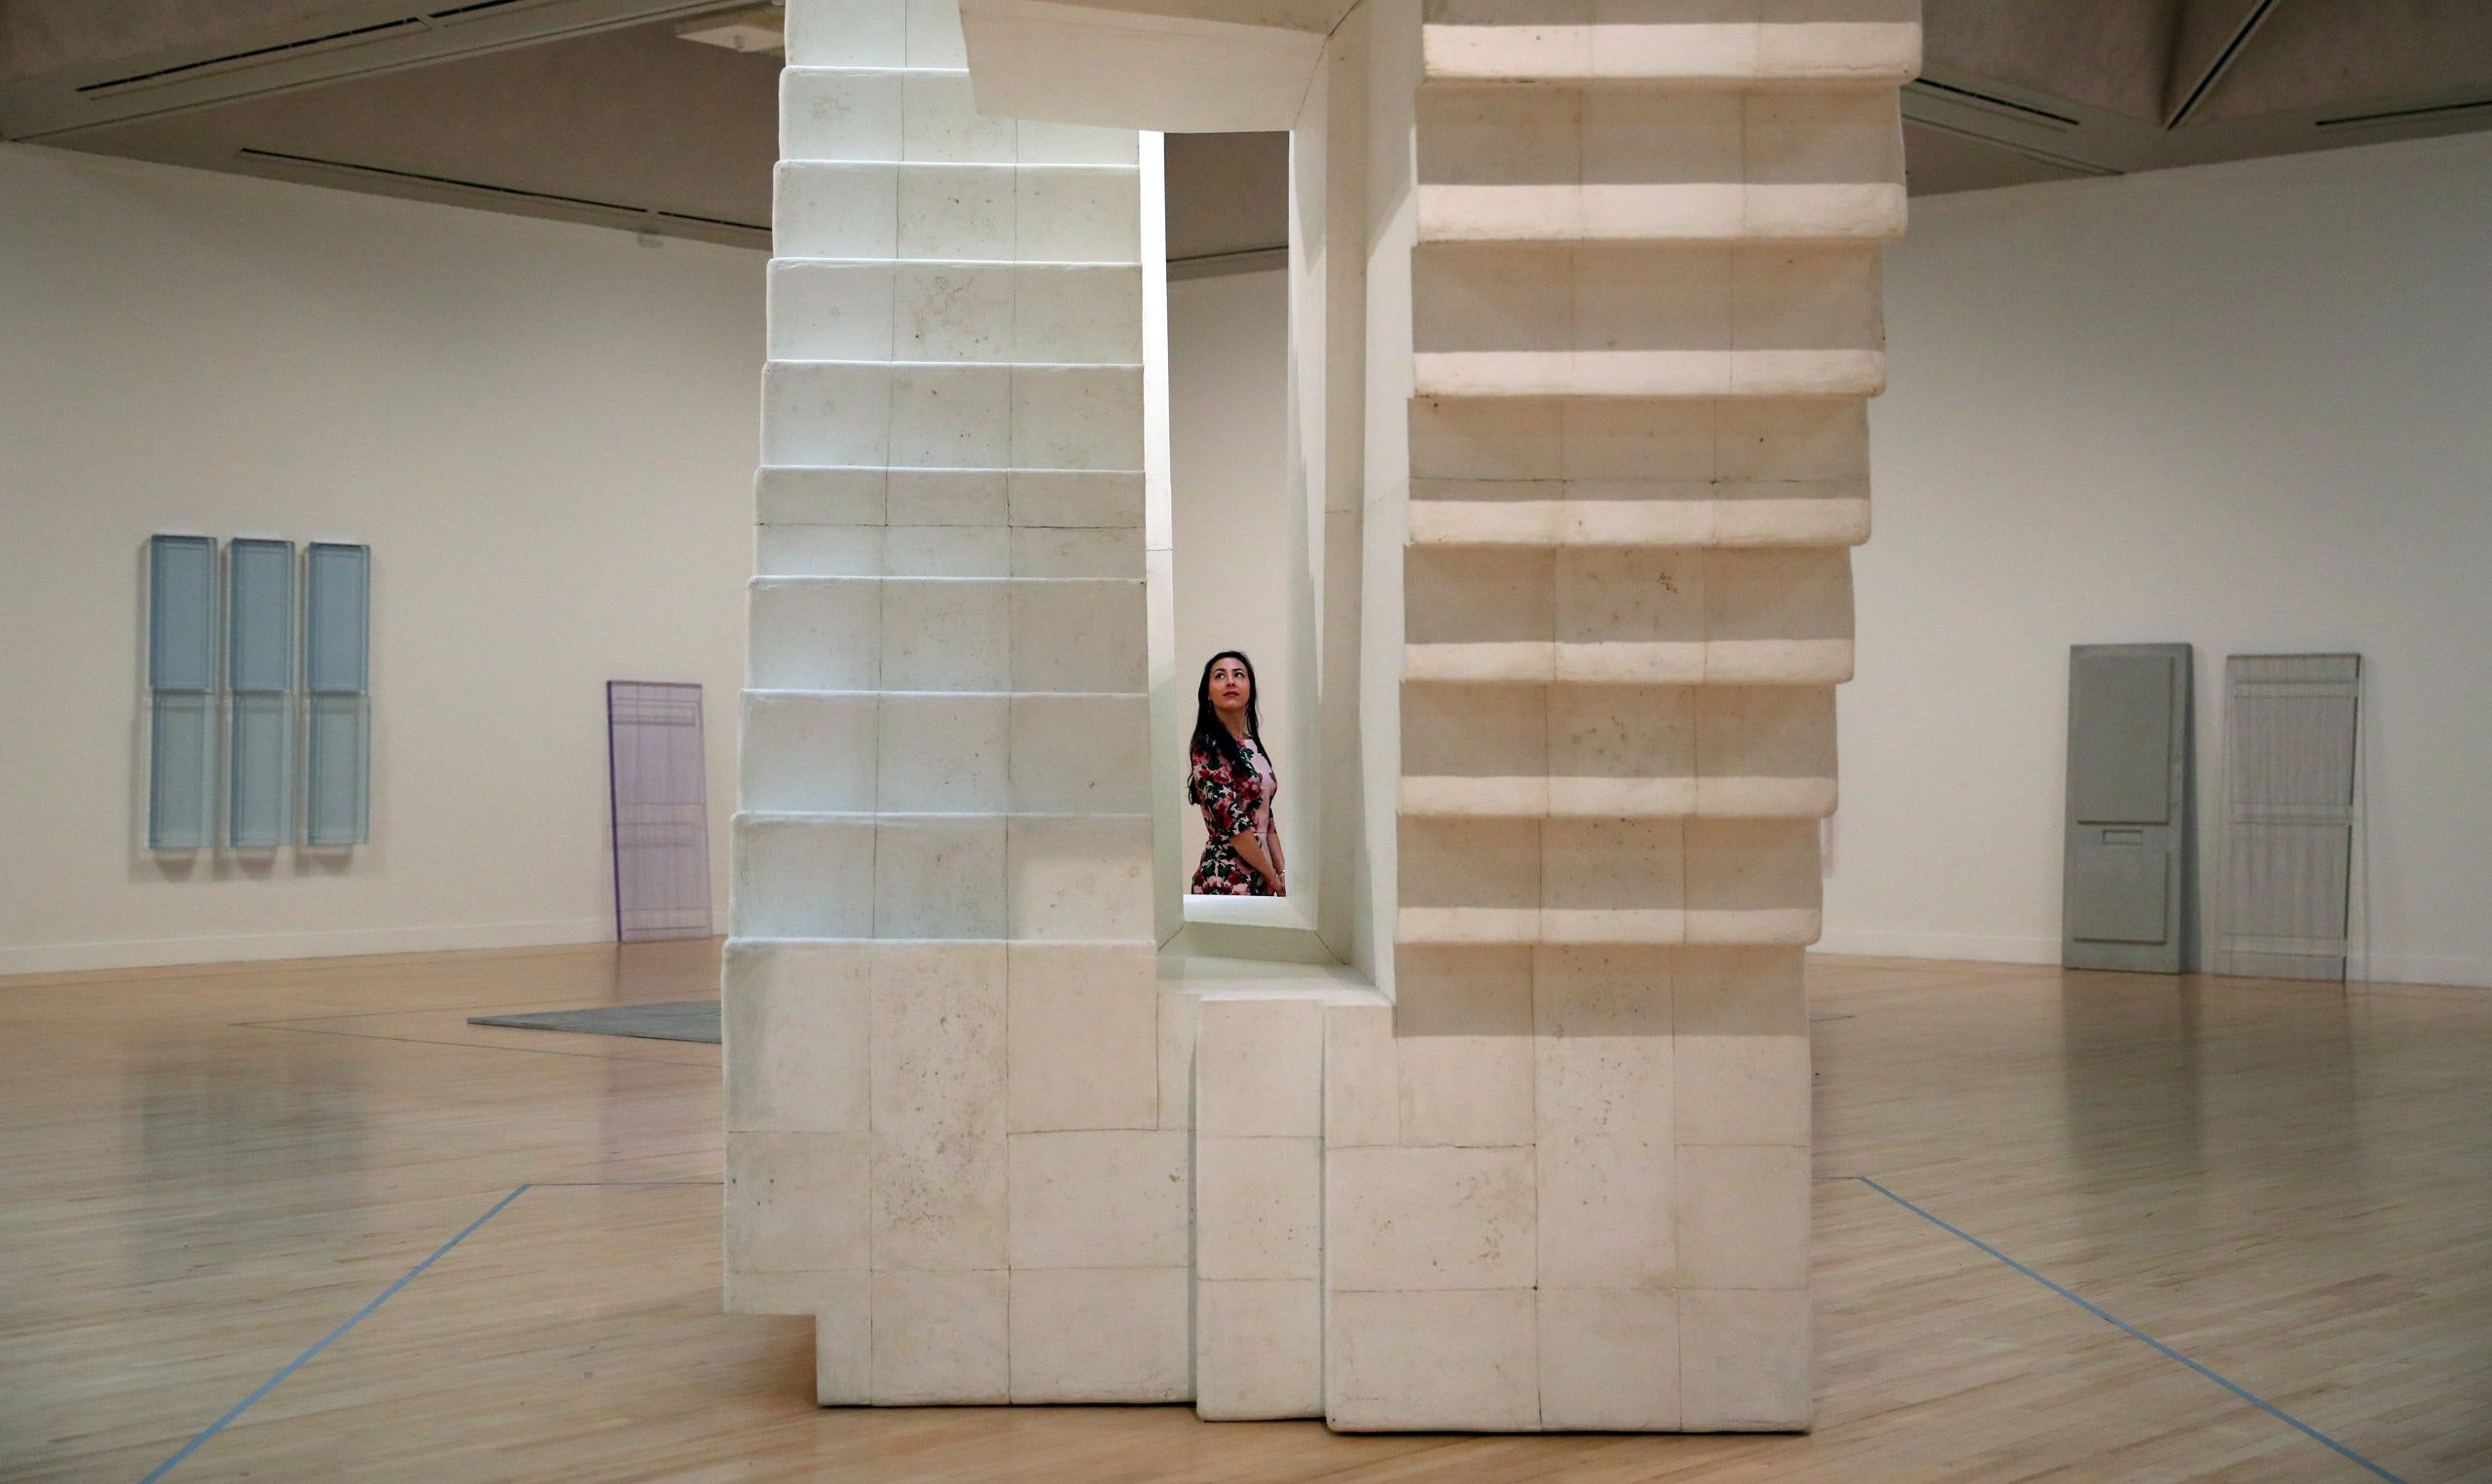 """A gallery assistant poses in front of Rachel Whiteread's installation """"Untitled (Stairs)"""" at the Tate Britain in London, Britain, September 11, 2017. REUTERS/Hannah McKay      FOR EDITORIAL USE ONLY. NOT FOR SALE FOR MARKETING OR ADVERTISING CAMPAIGNS - RC1CC11AC390"""